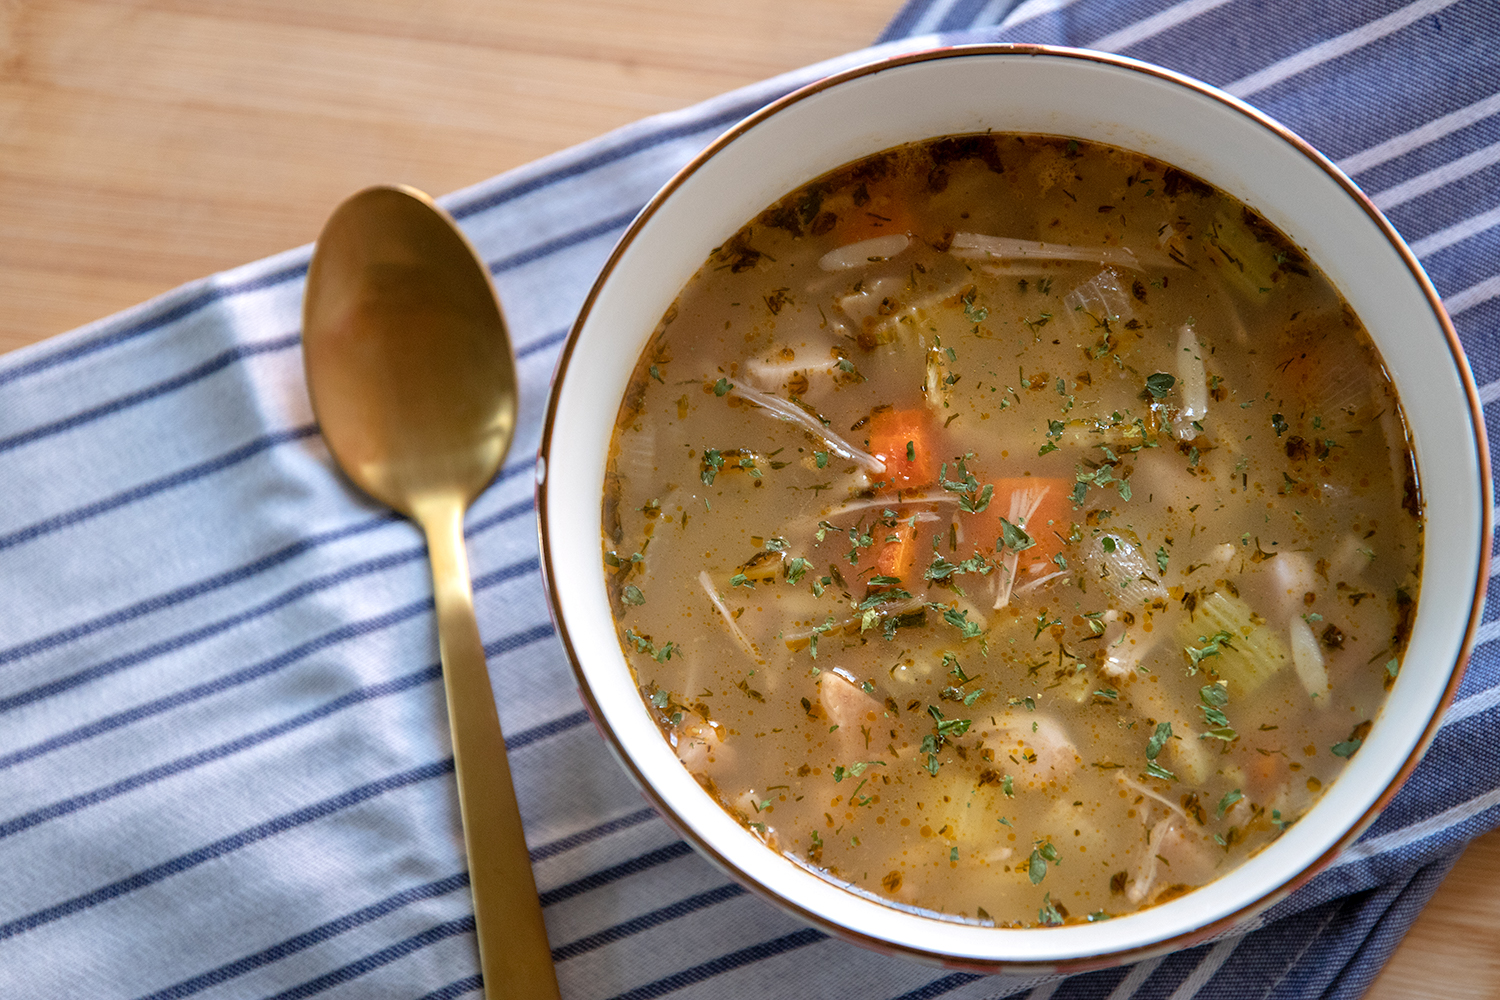 If you are missing classic chicken and rice or chicken noodle soup, this recipe is for you! We use jackfruit to mimic the chicken and orzo in place of noodles or rice! This soup is savory, delicious, comforting, and so easy to throw together. Perfect for chilly weather, or for helping mend a cold or flu. It also will freeze really well, so go ahead a make a double batch and freeze half. That way the next time you are feeling under the weather, you can easily thaw and heat a batch of this classic comforting soup!